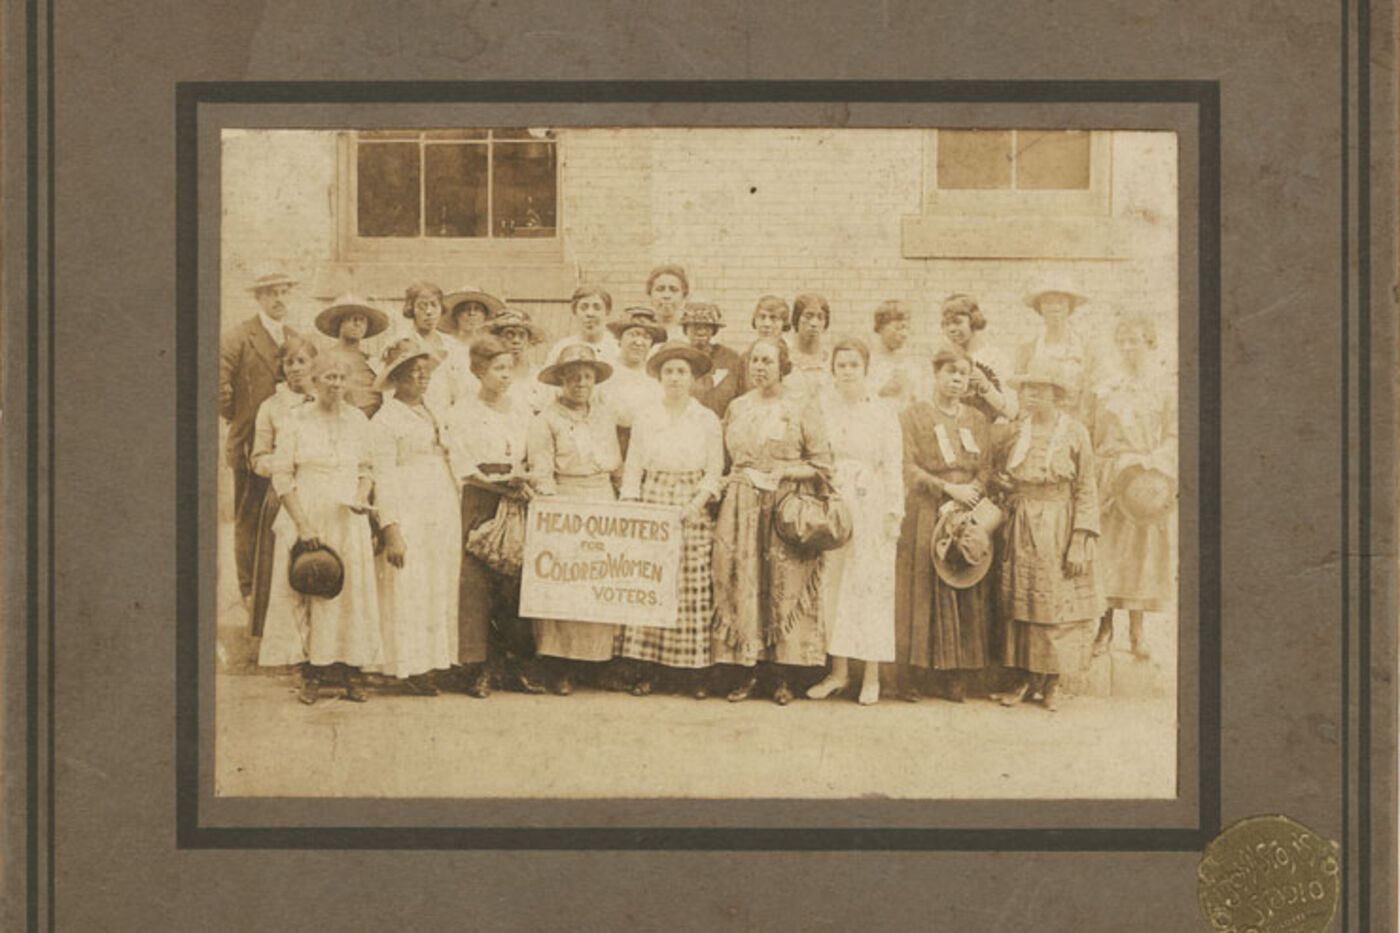 """A group of women pose in front of a building. Two women in the front hold a sign that reads, """"Head-Quarters for Colored Women Voters."""""""